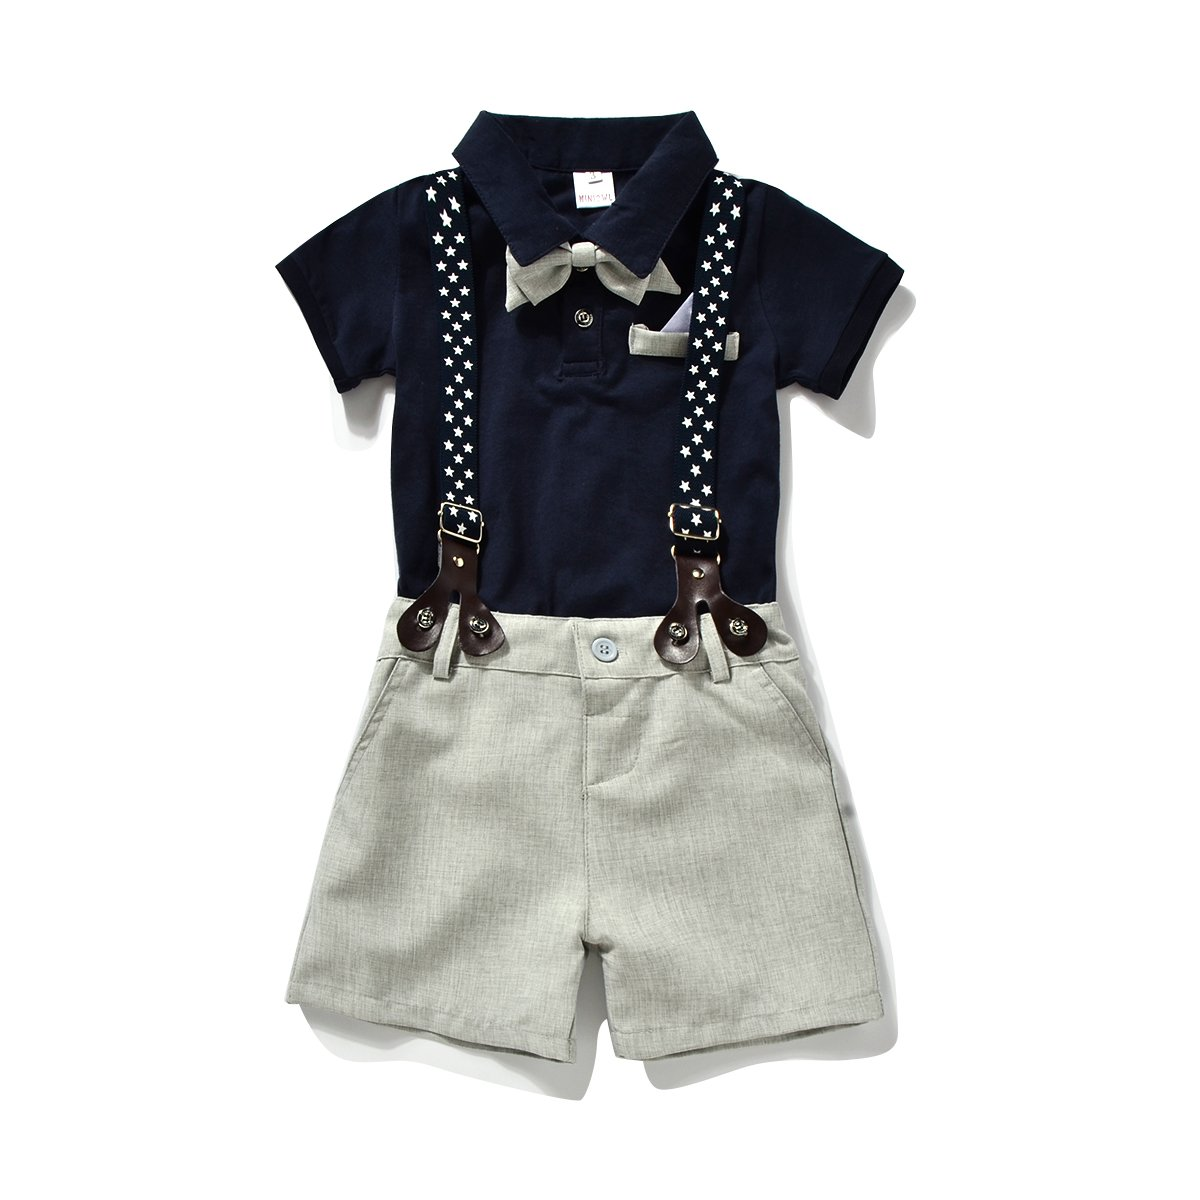 Miniowl ® Toddler Boys 2 PCS Set Gentleman Bowtie Polo T-shirt Bid Shorts Overalls (3t, Black)